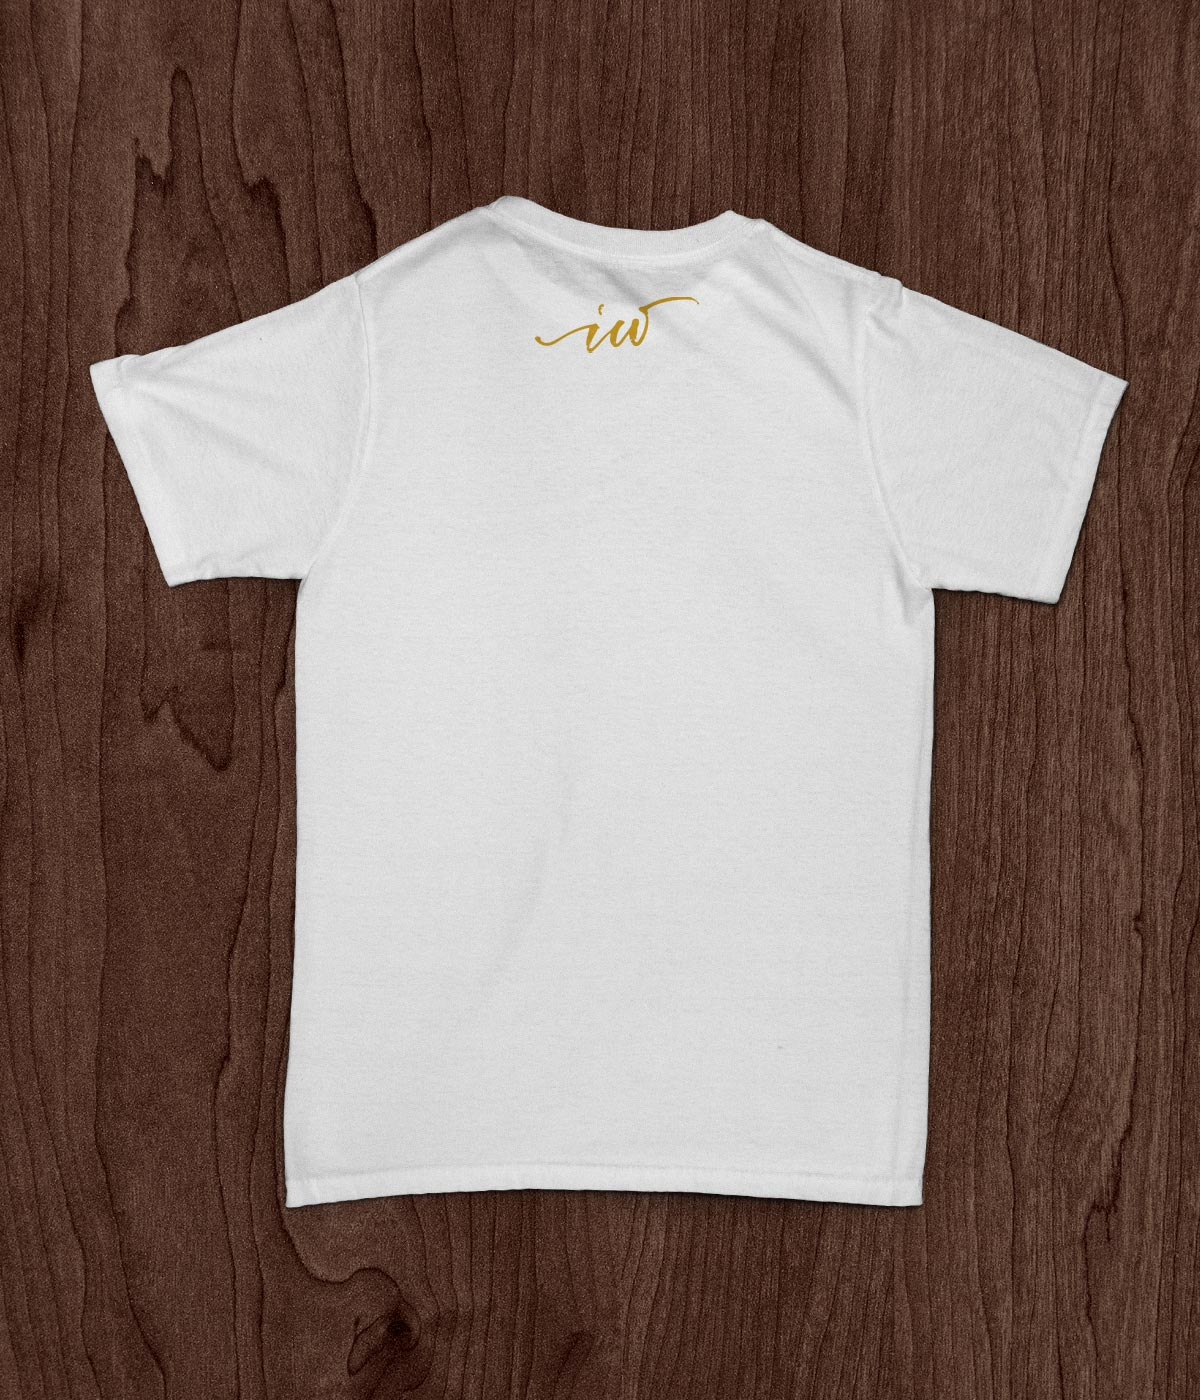 Creativamente - Ideal Wood T-shirt MockUp